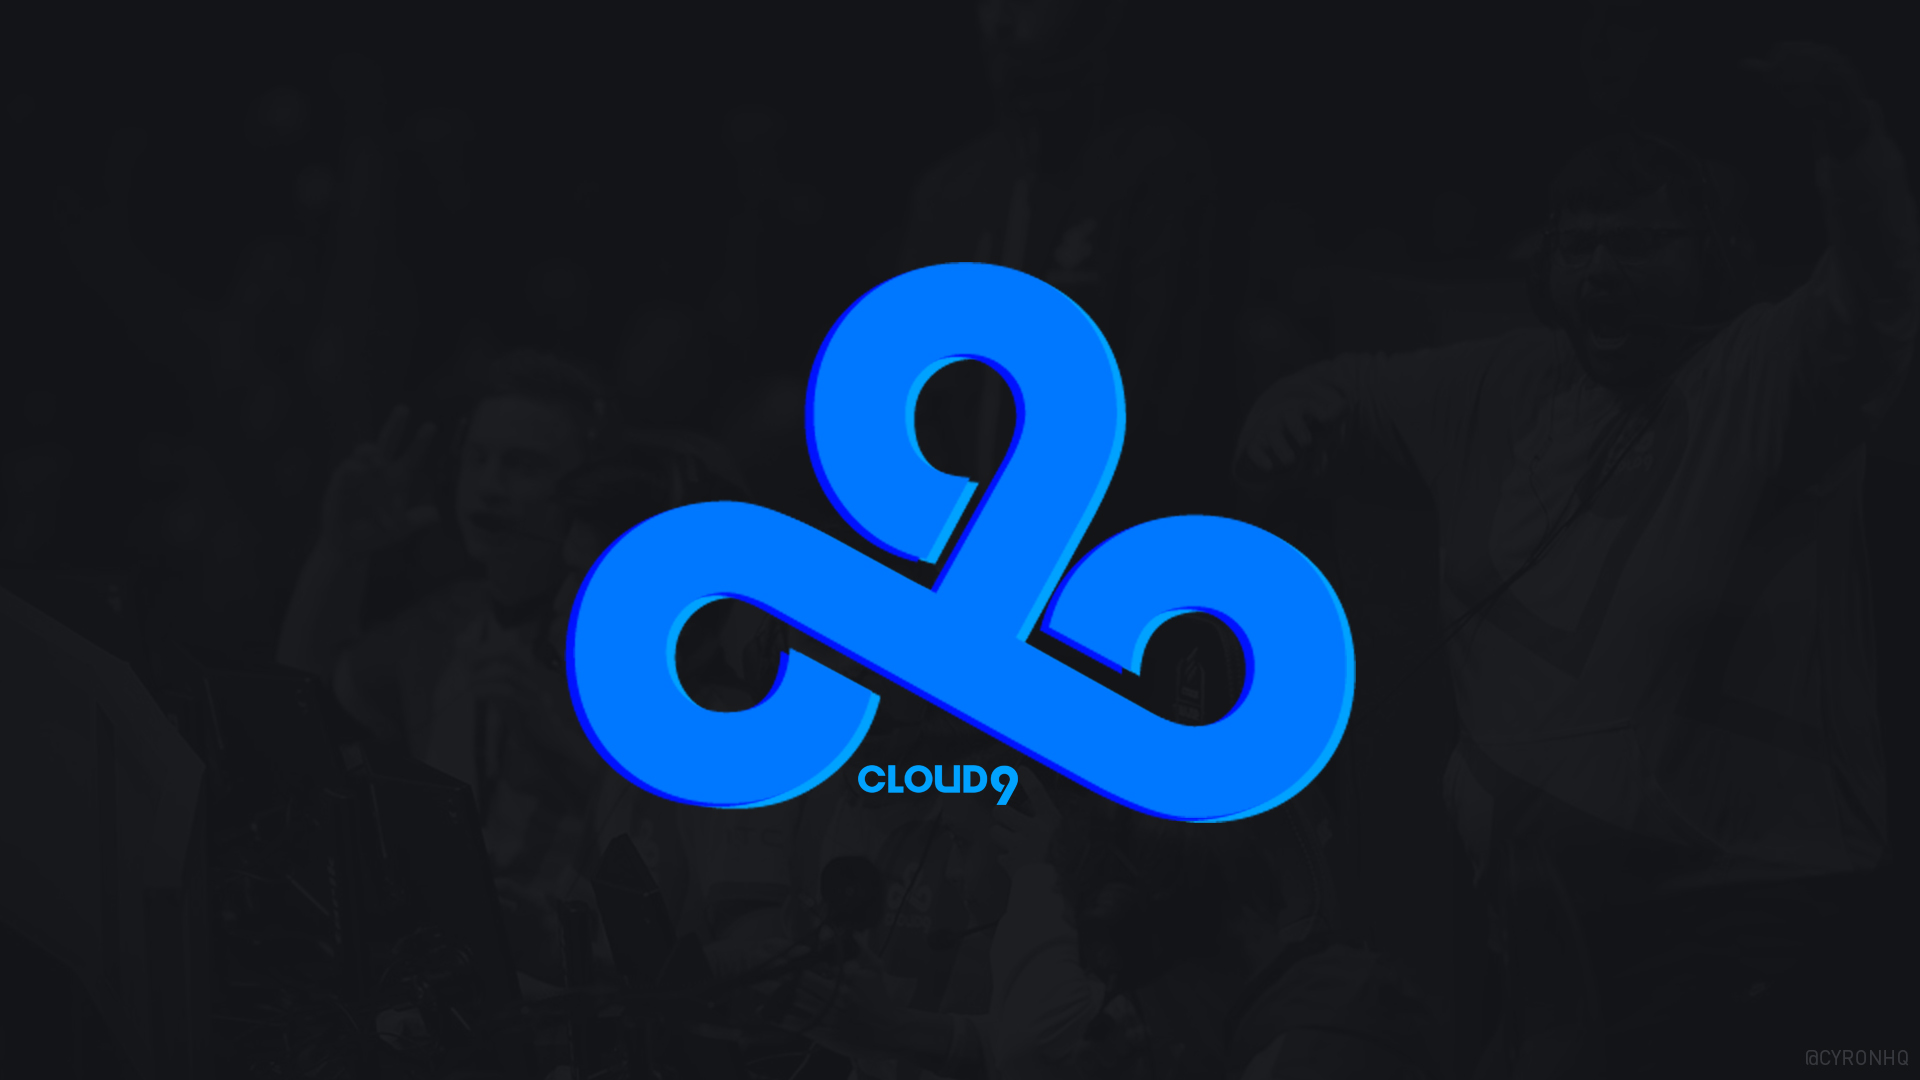 Cloud9 Tripple-Blue Wallpaper